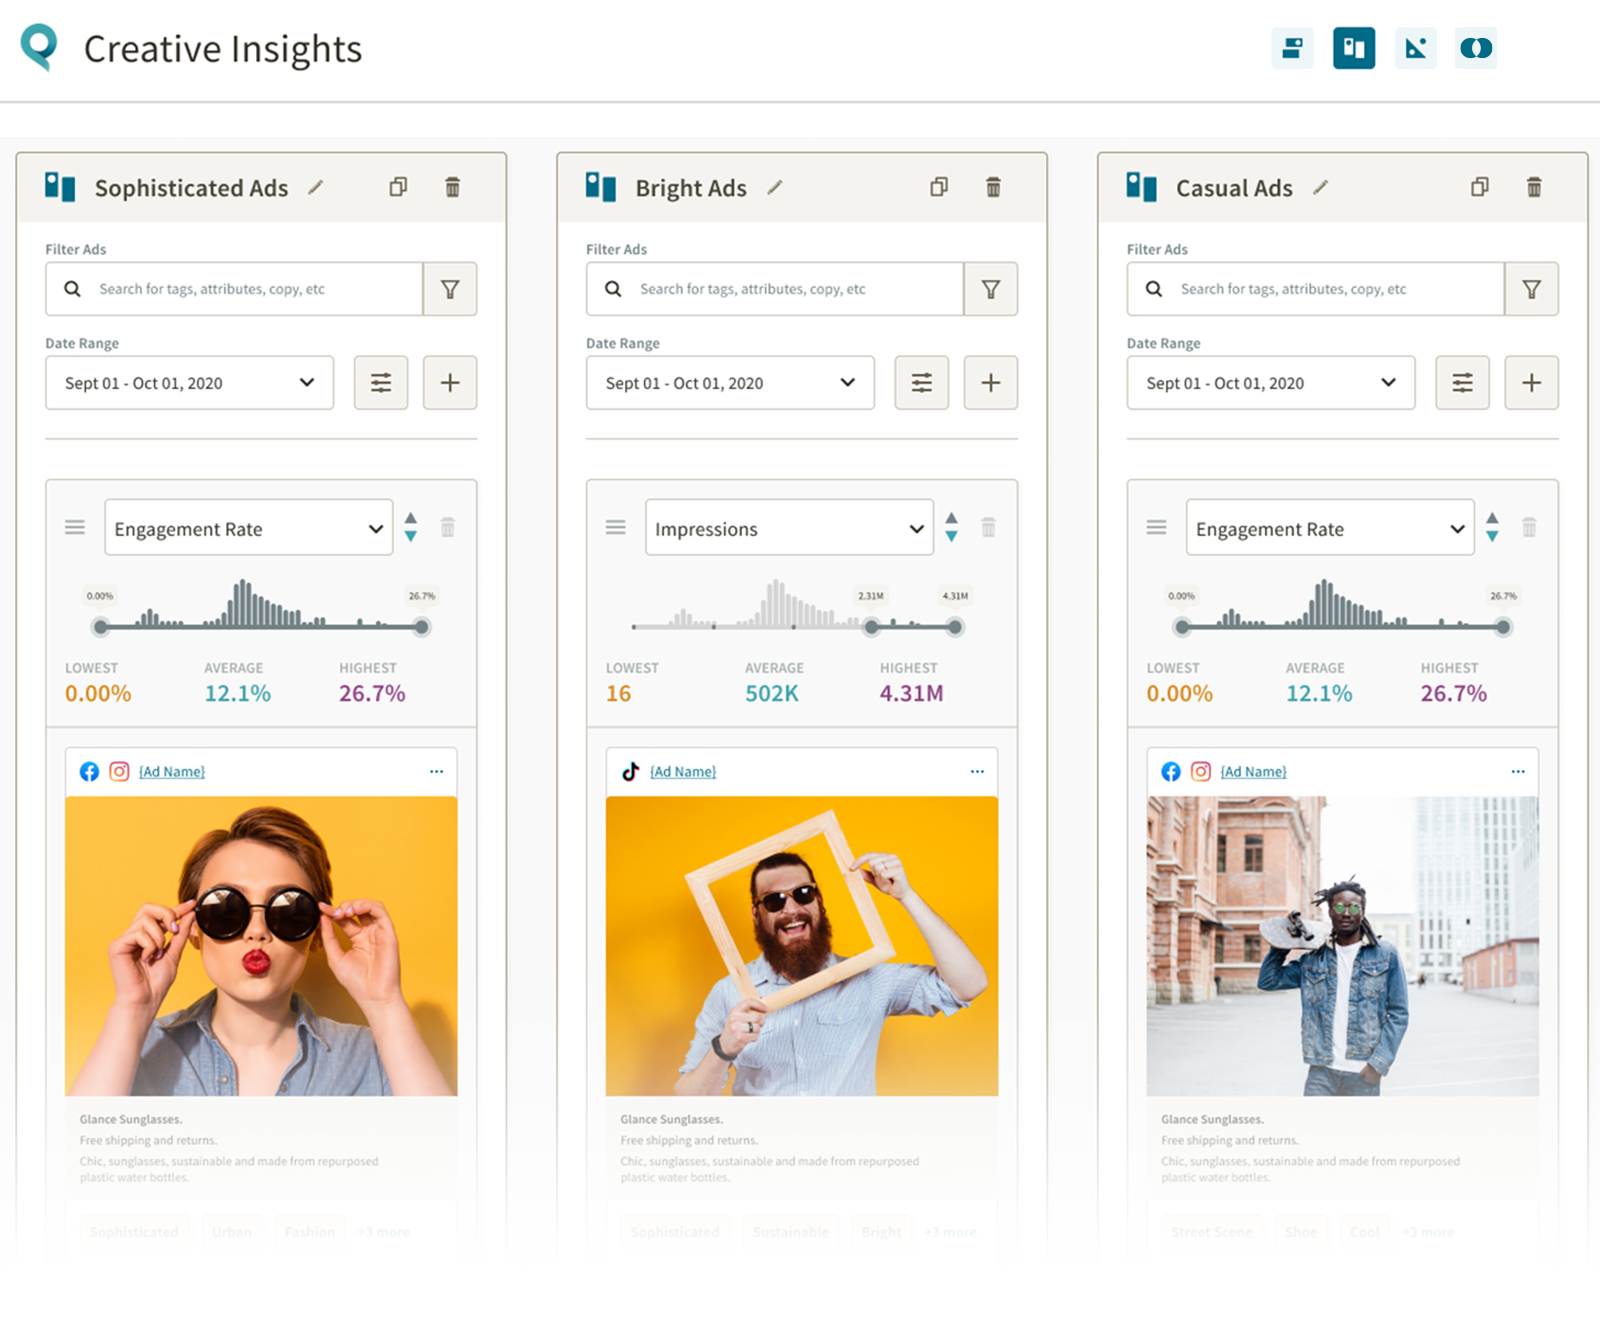 Creative Insights - Leaderboard View